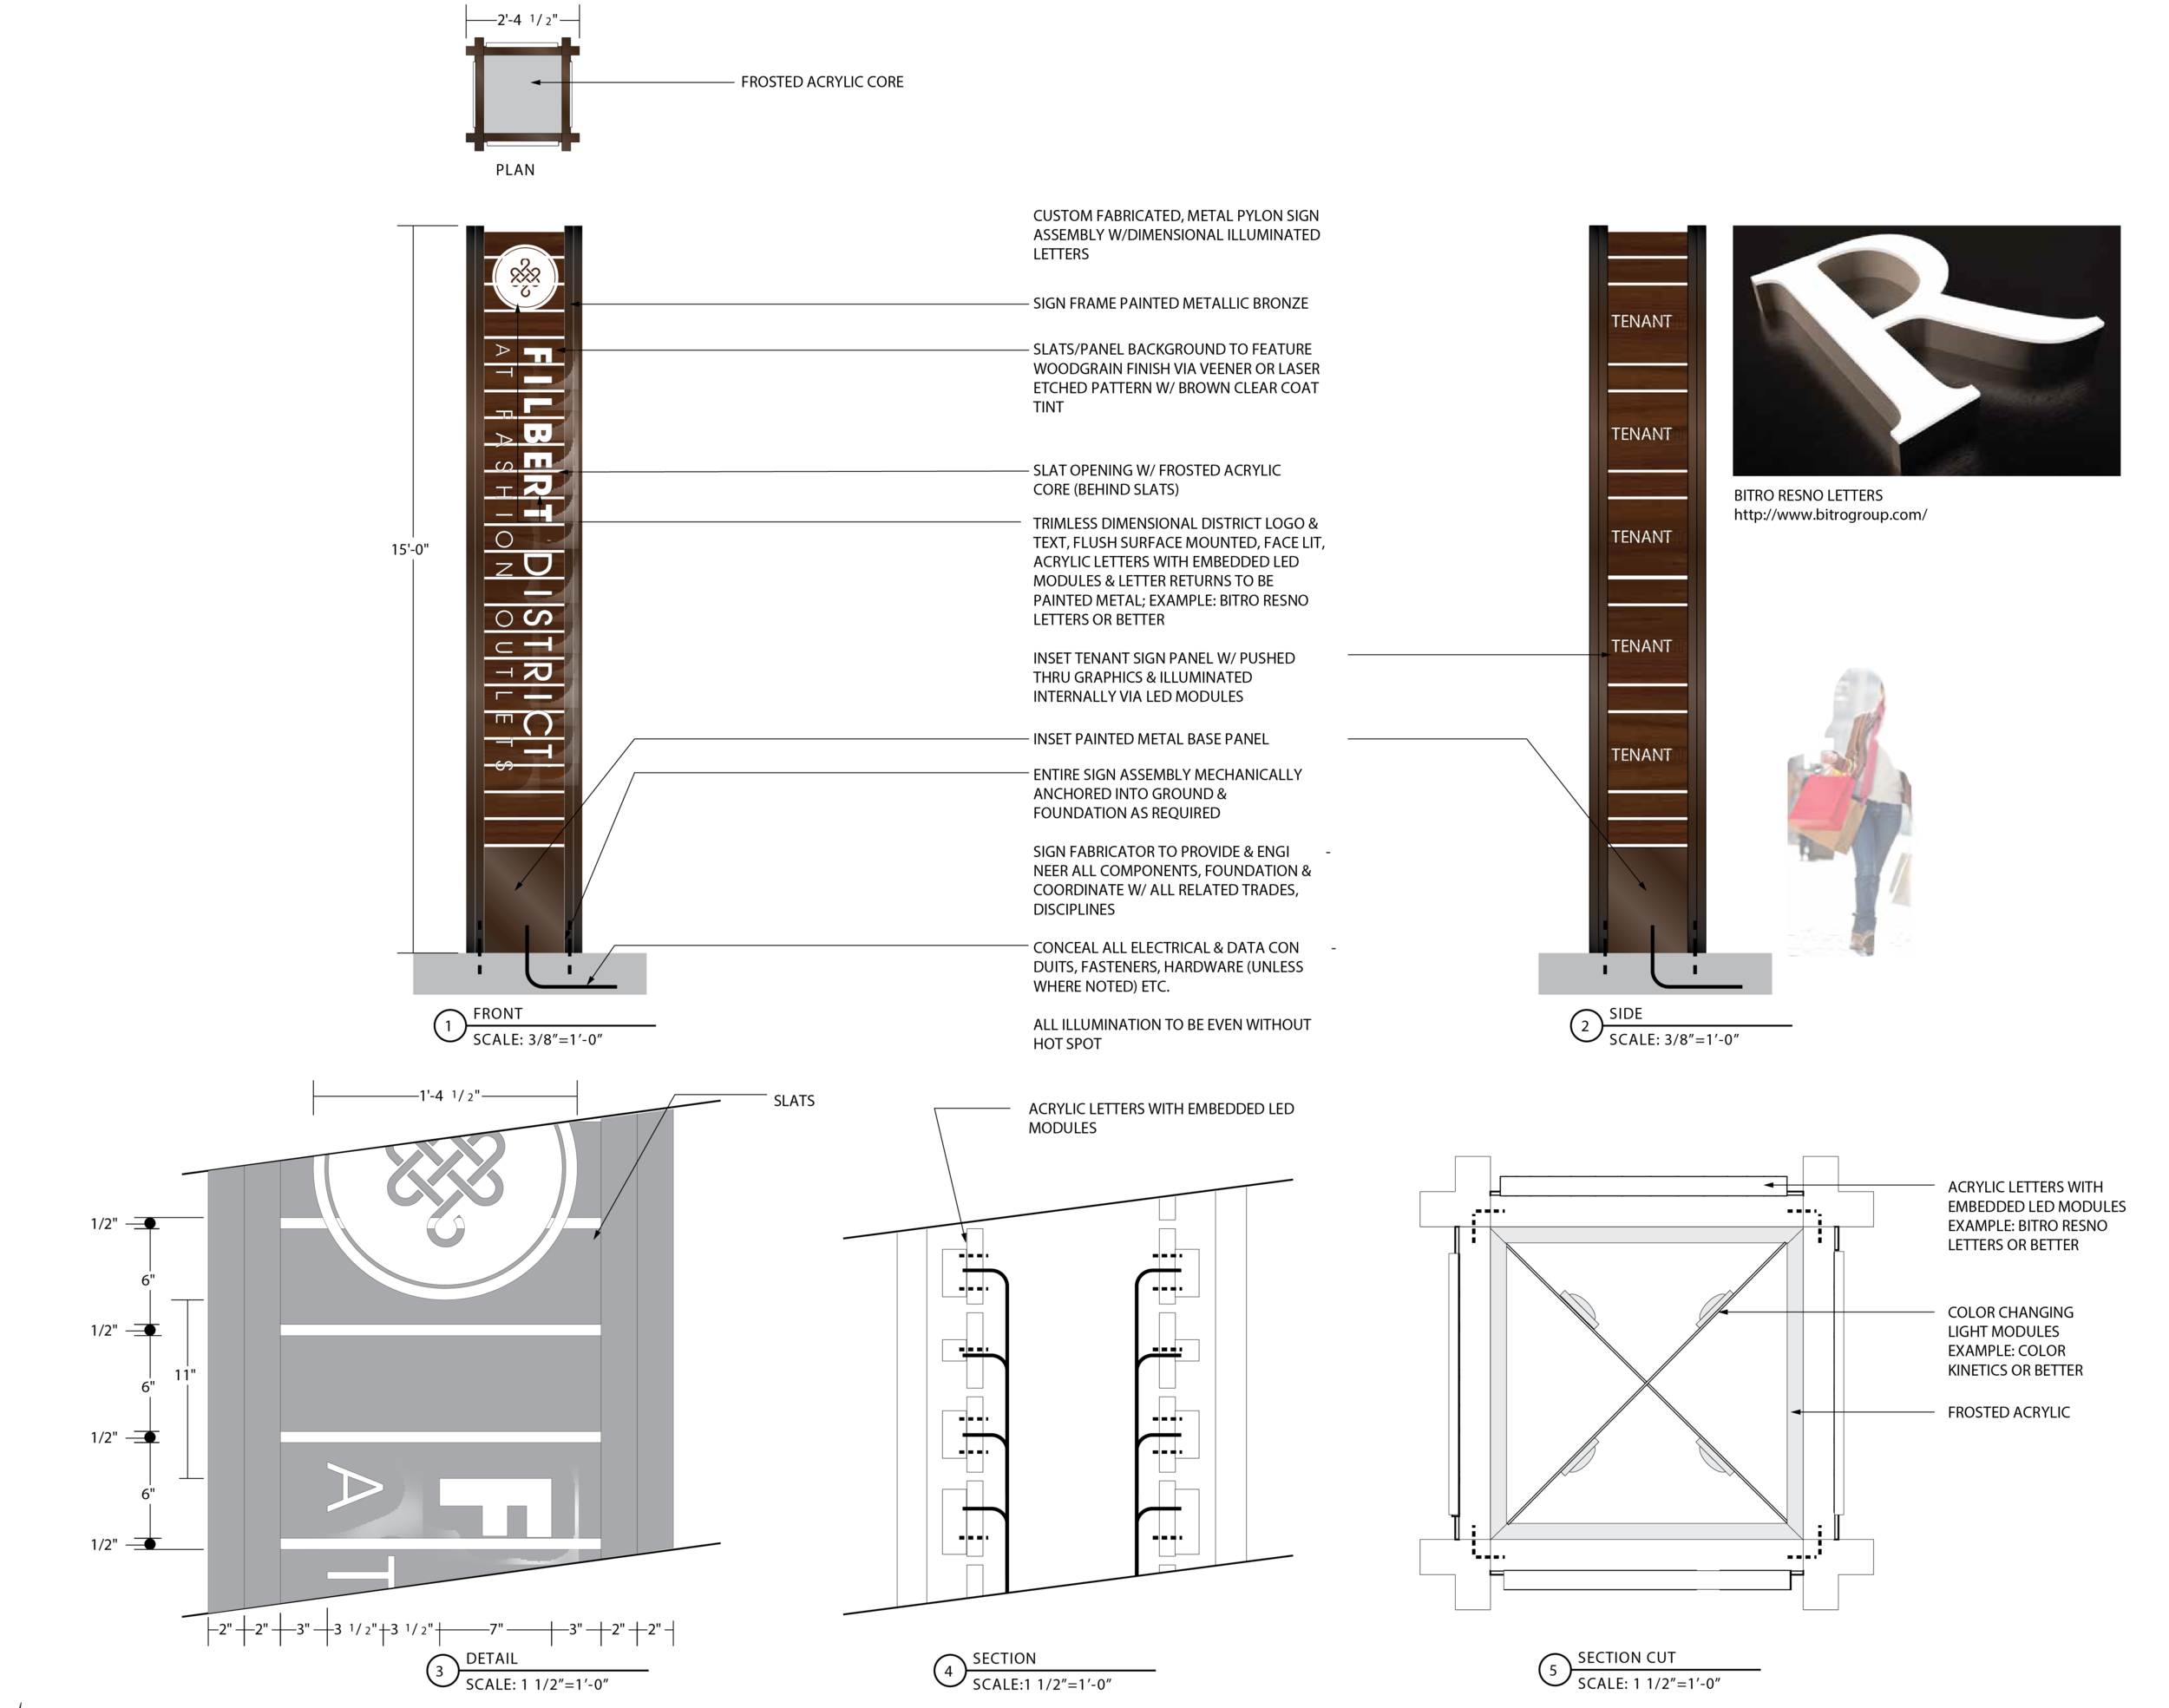 FOP_Bid Set 2C-ADD2_Signage Drawings_100-02.png